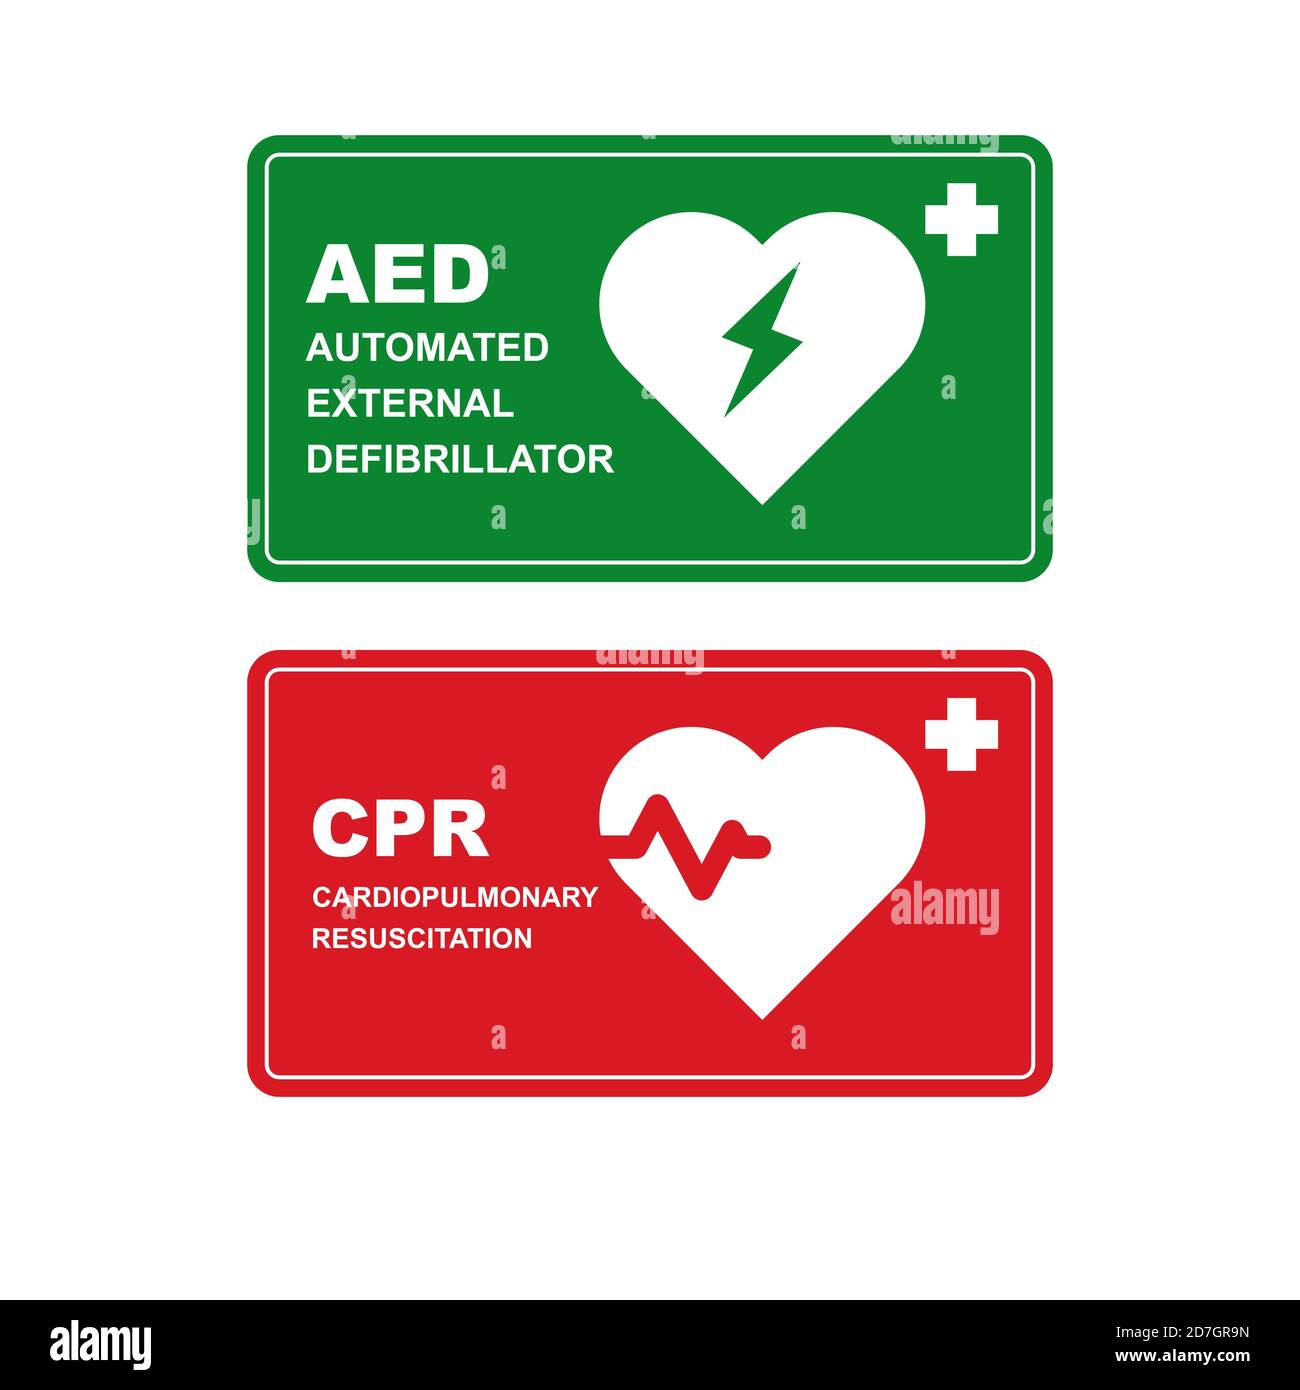 Aed Automated External